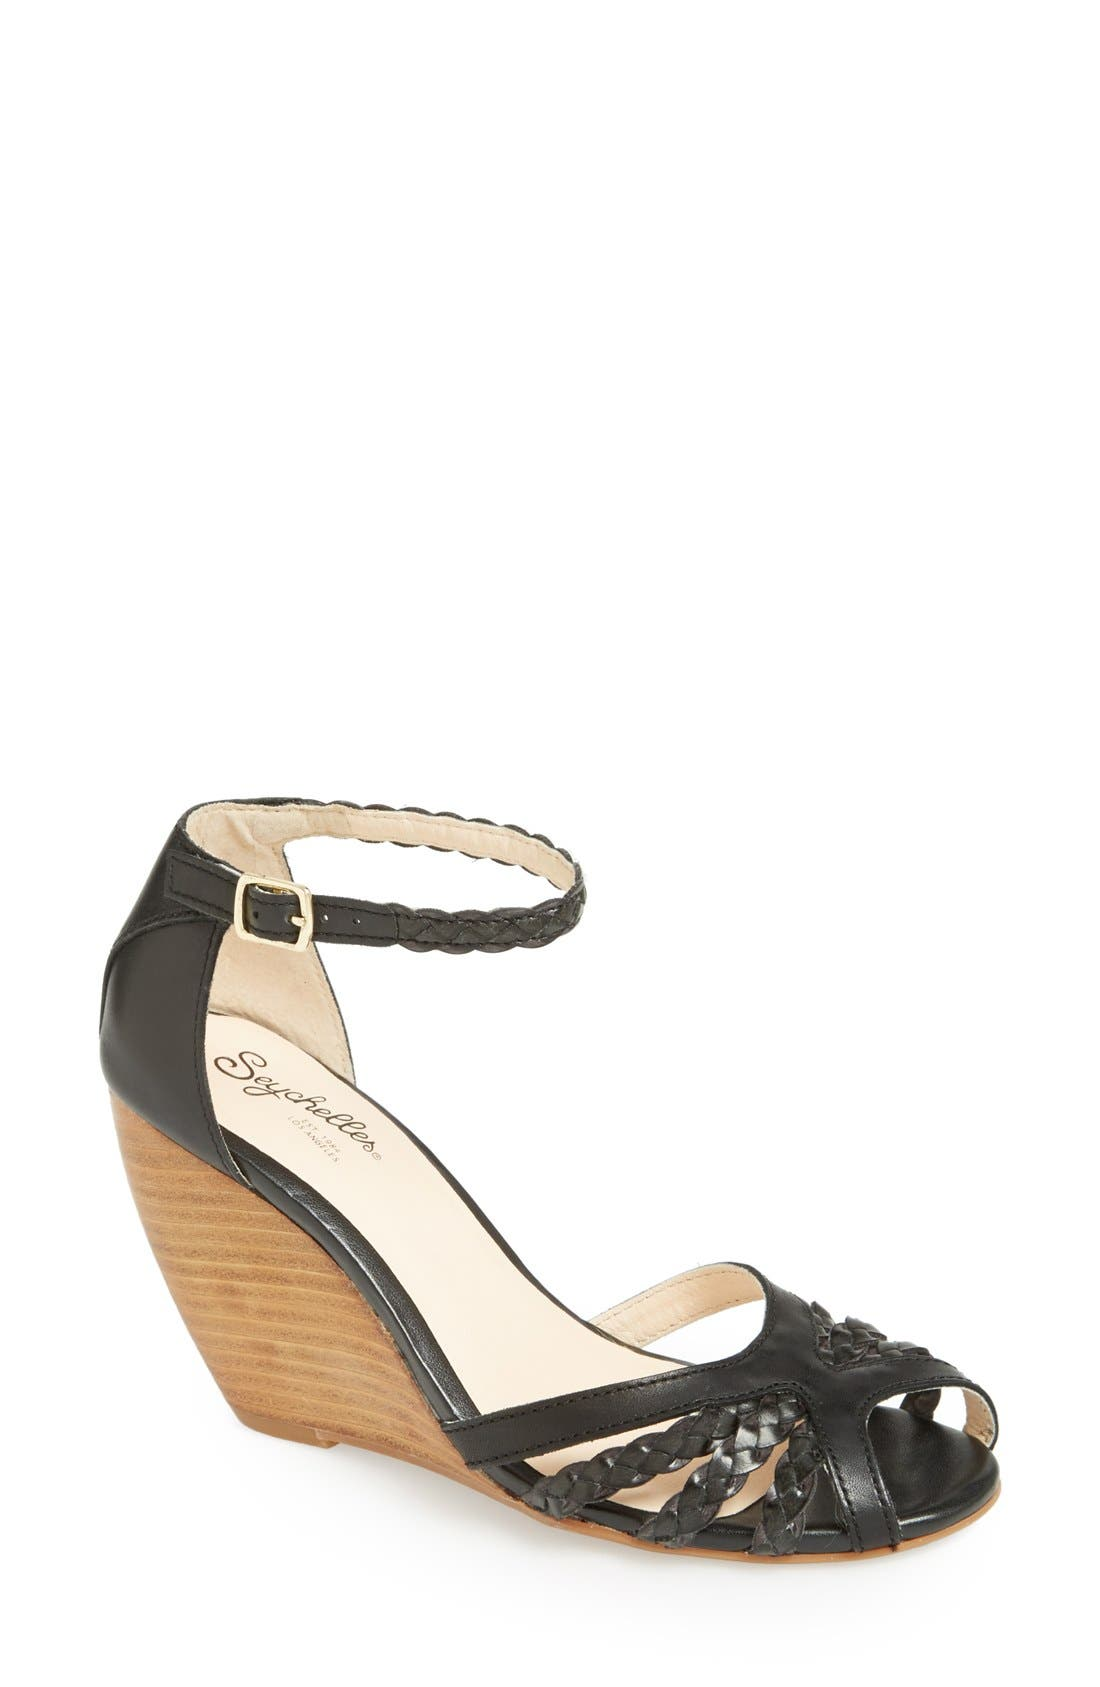 Main Image - Seychelles 'Like a Lady' Wedge Sandal (Women)